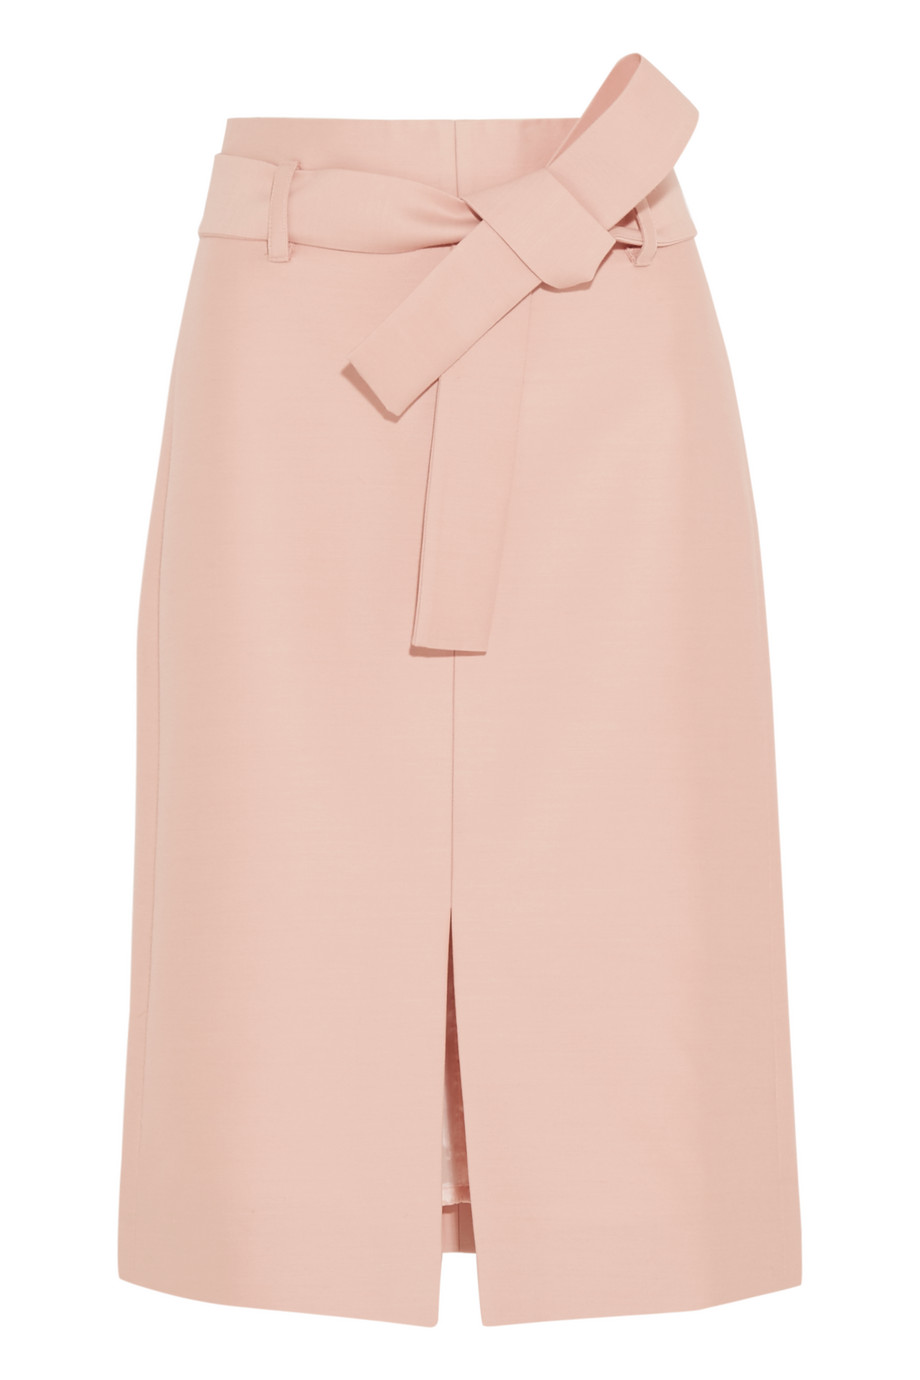 J.Crew Collection Leslie Wool and Silk-Blend Faille Skirt, Blush, Women's, Size: 6